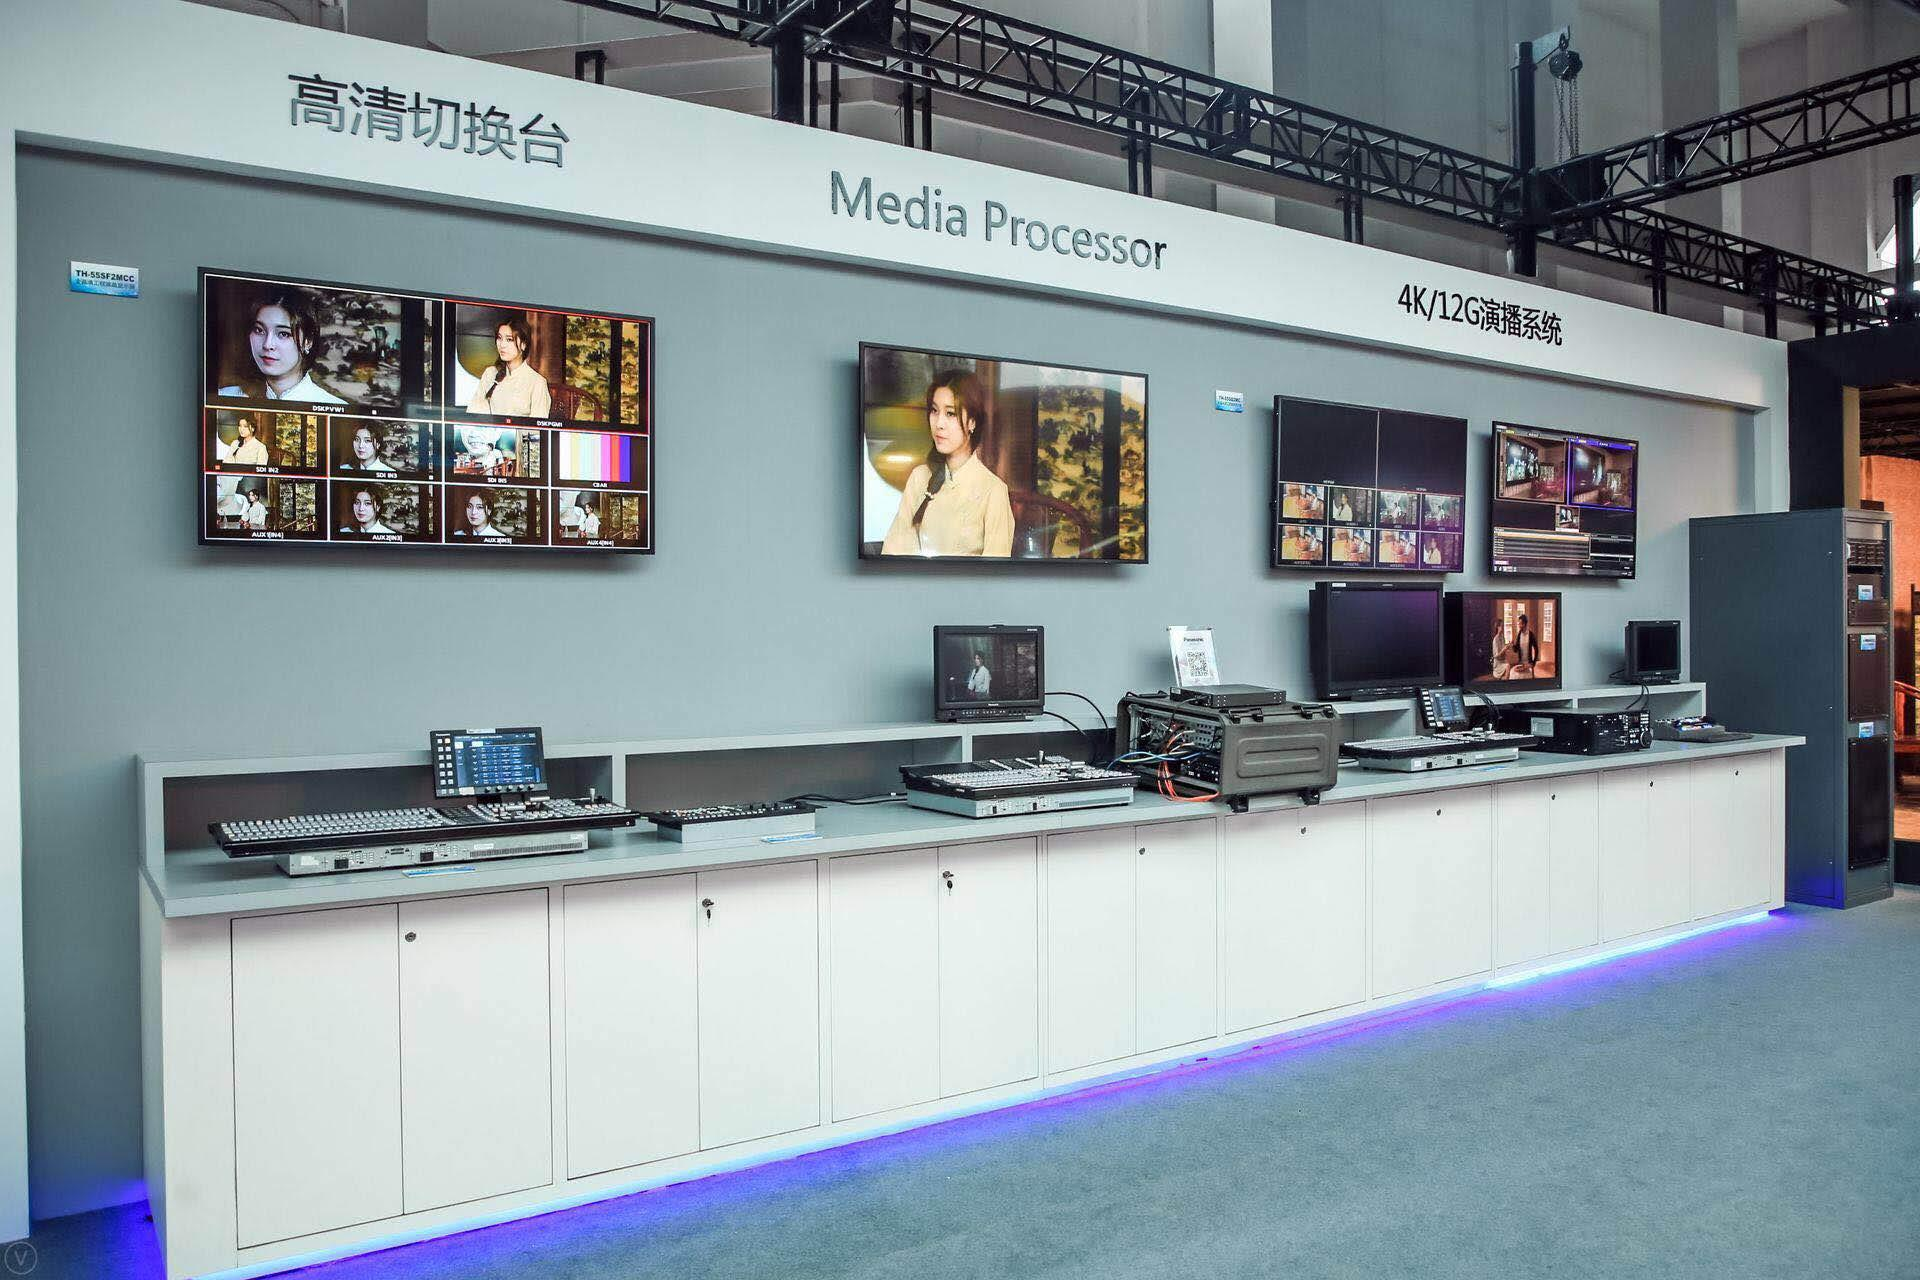 photo: Panasonic's Media Processor exhibit at BIRTV 2018